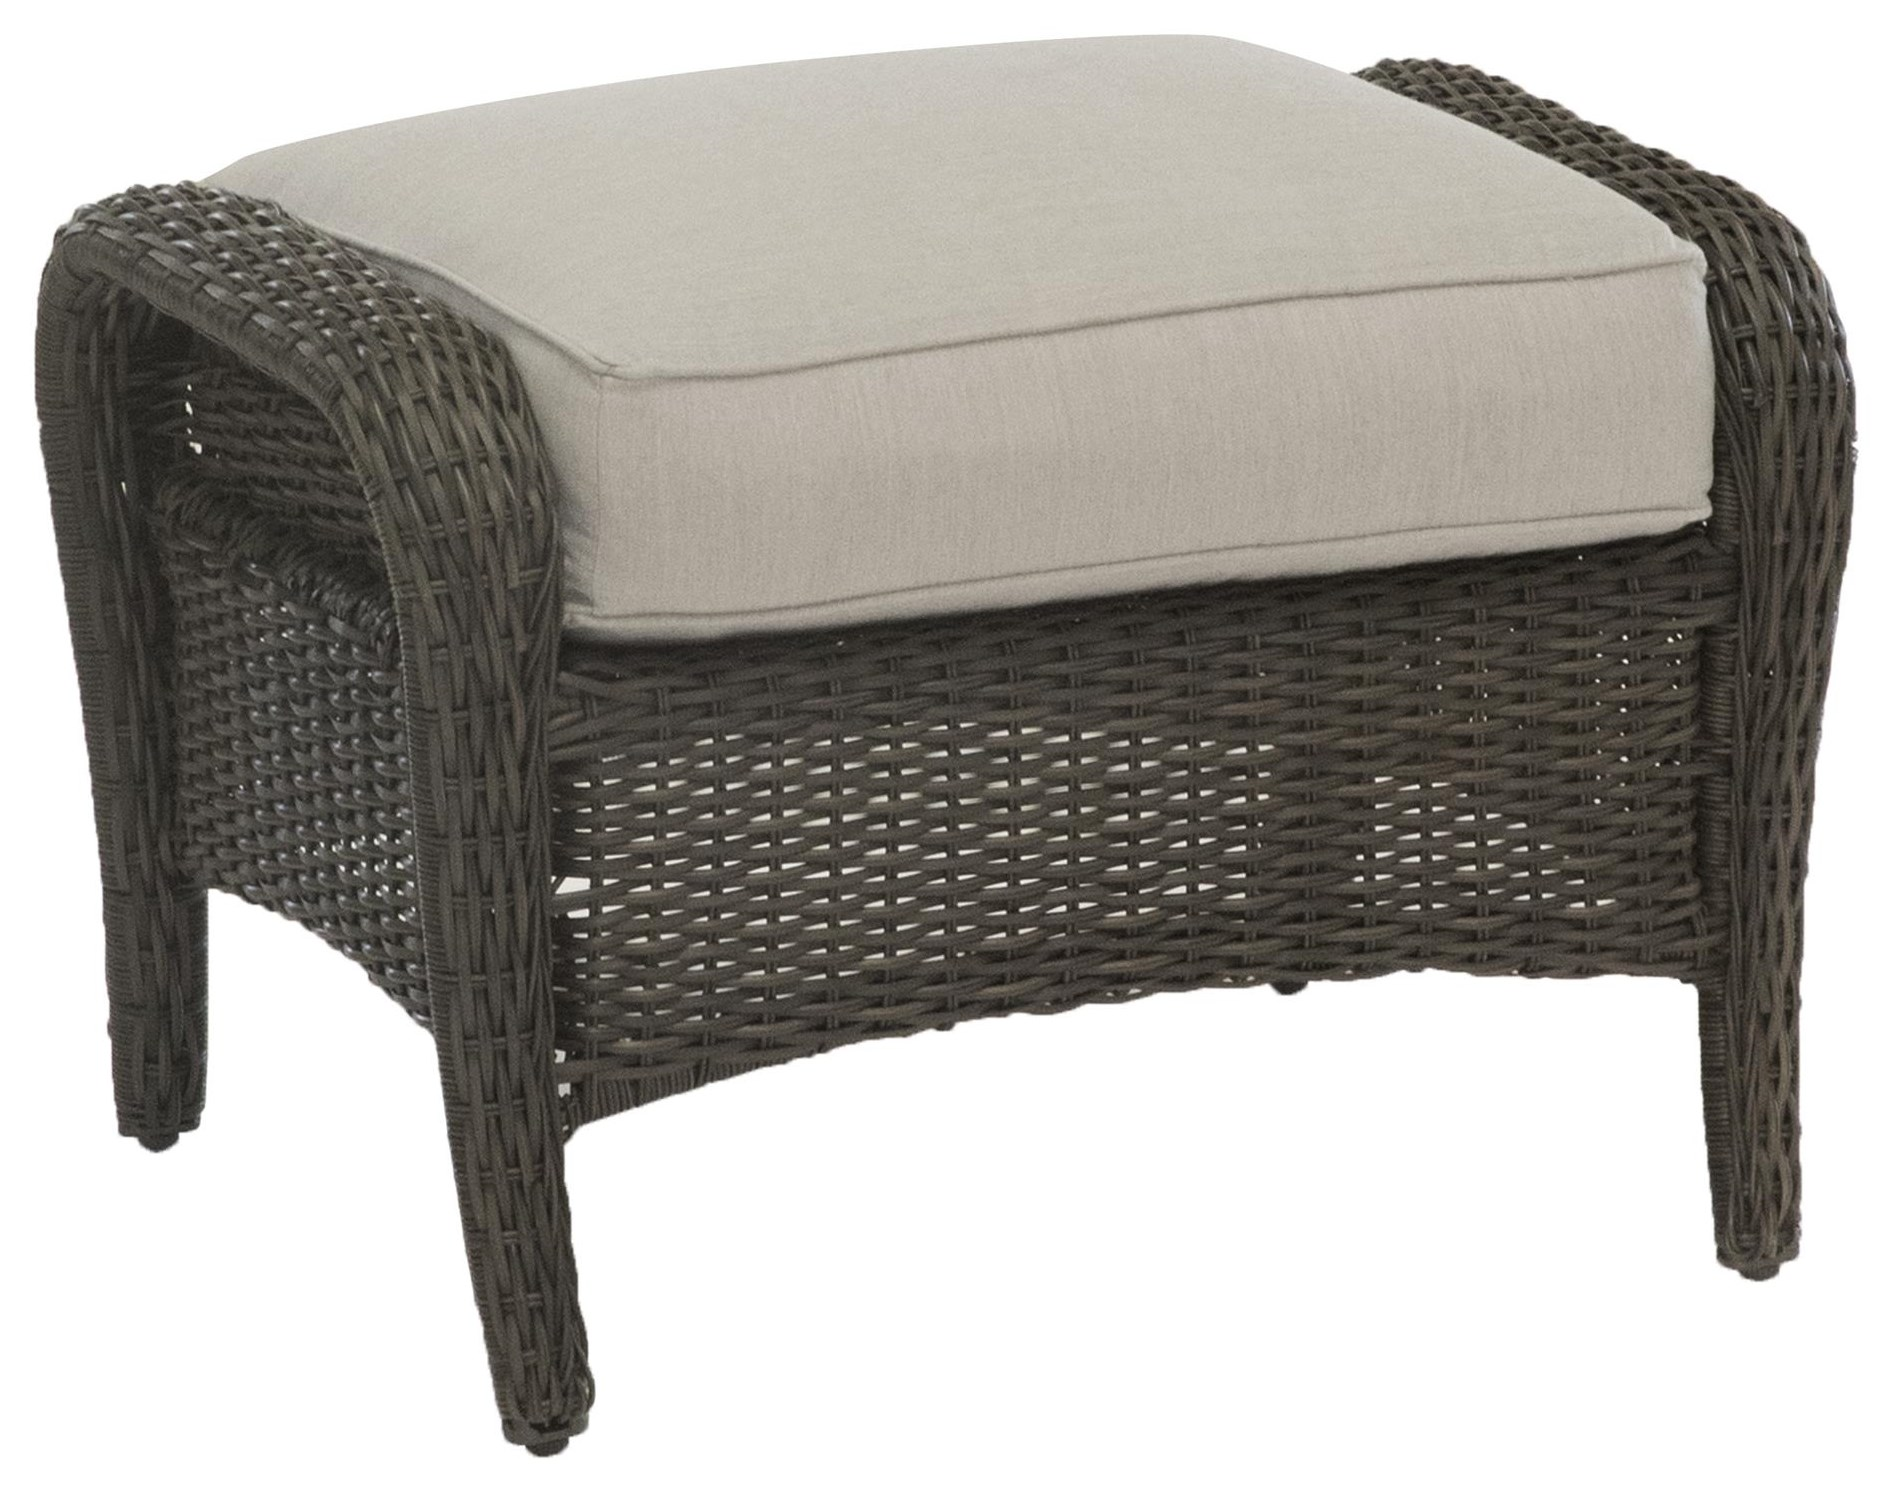 Riviera Ottoman by Apricity Outdoor at Johnny Janosik